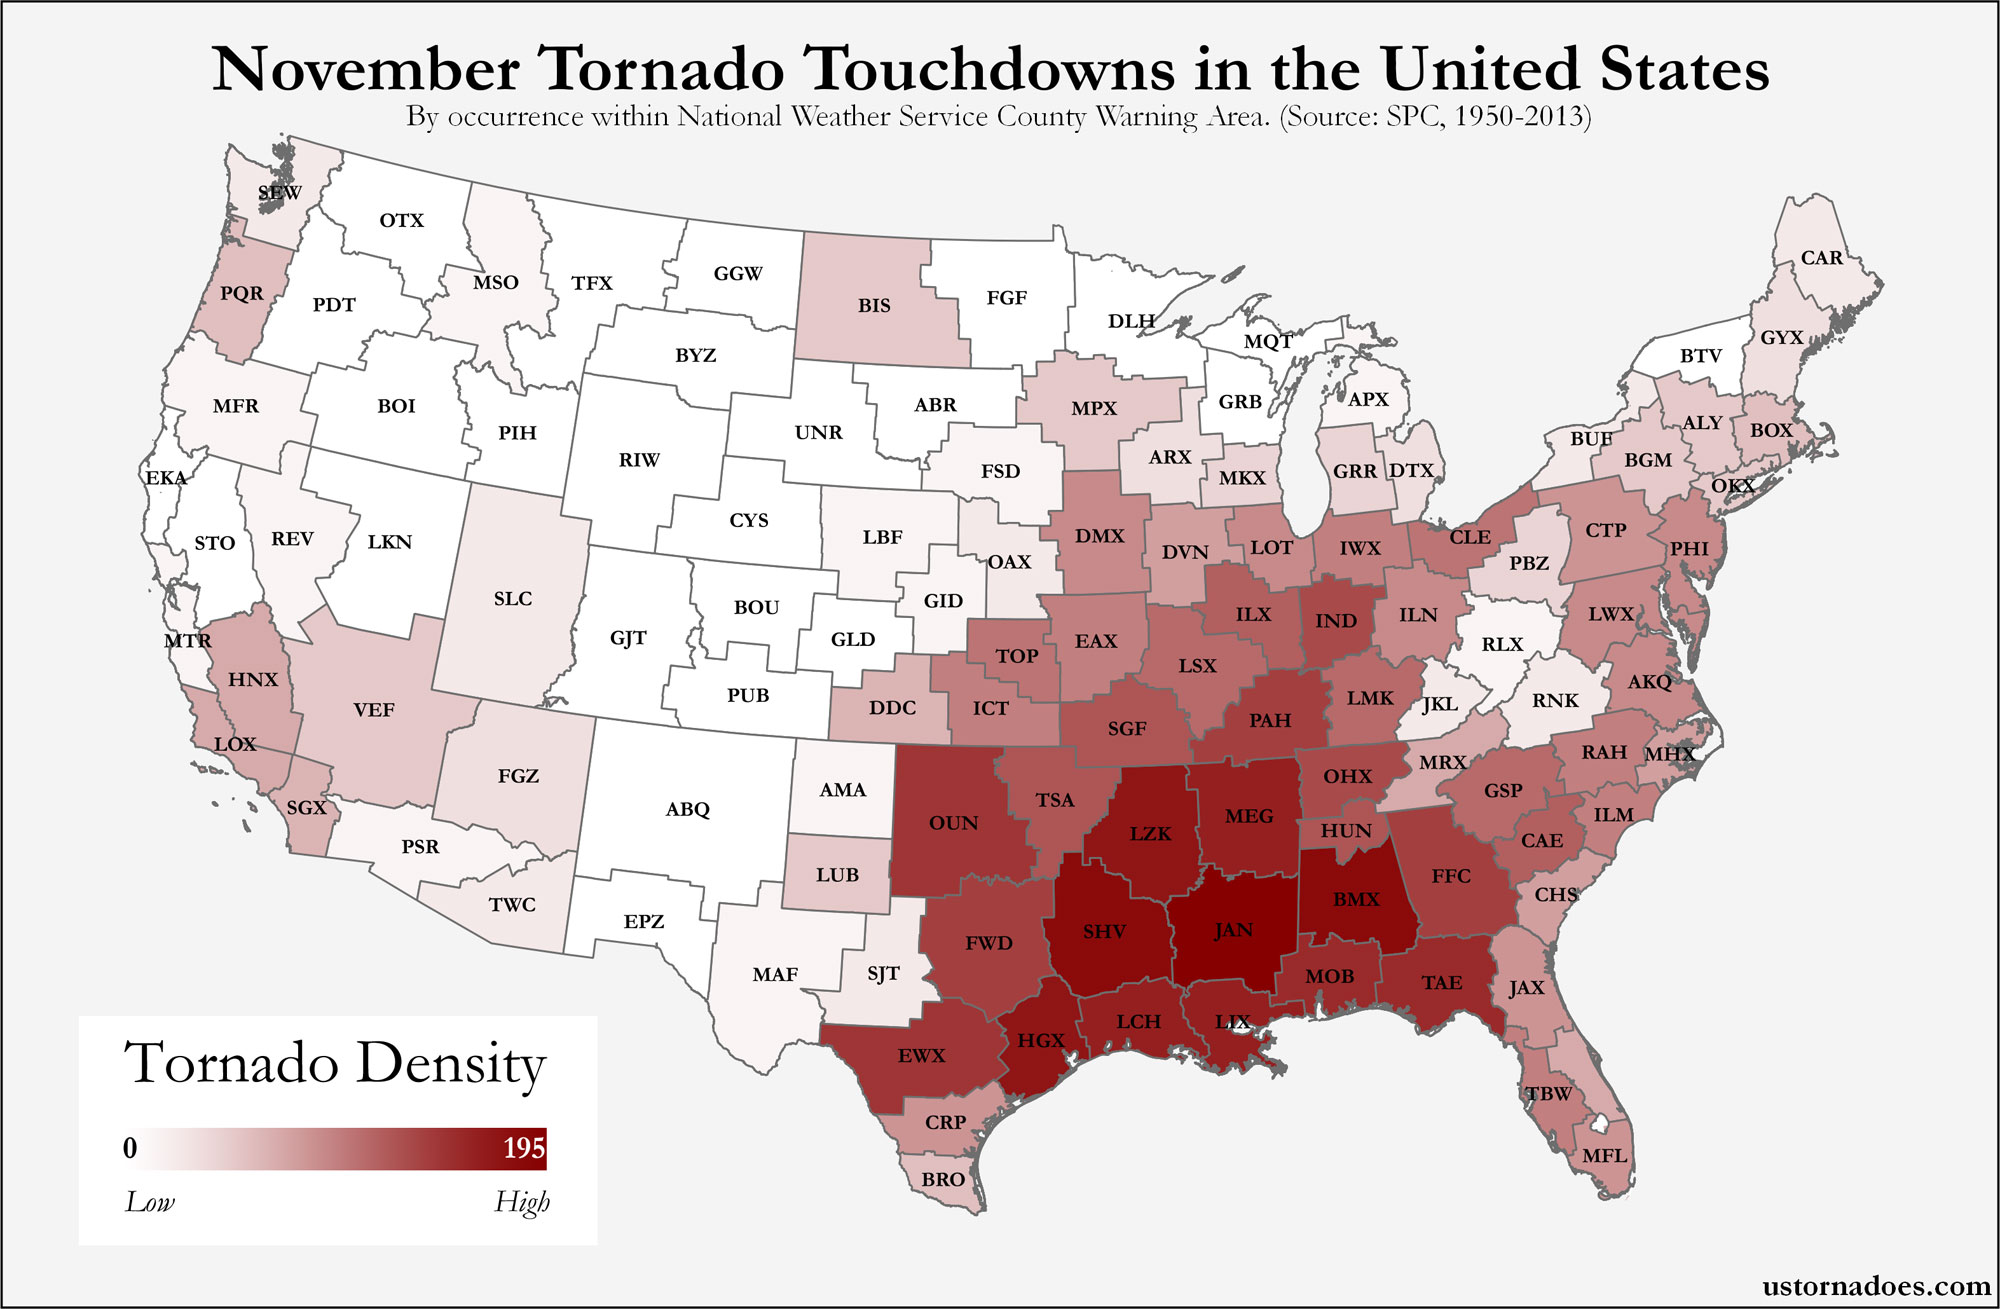 november-tornado-touchdown-nws-county-warning-area